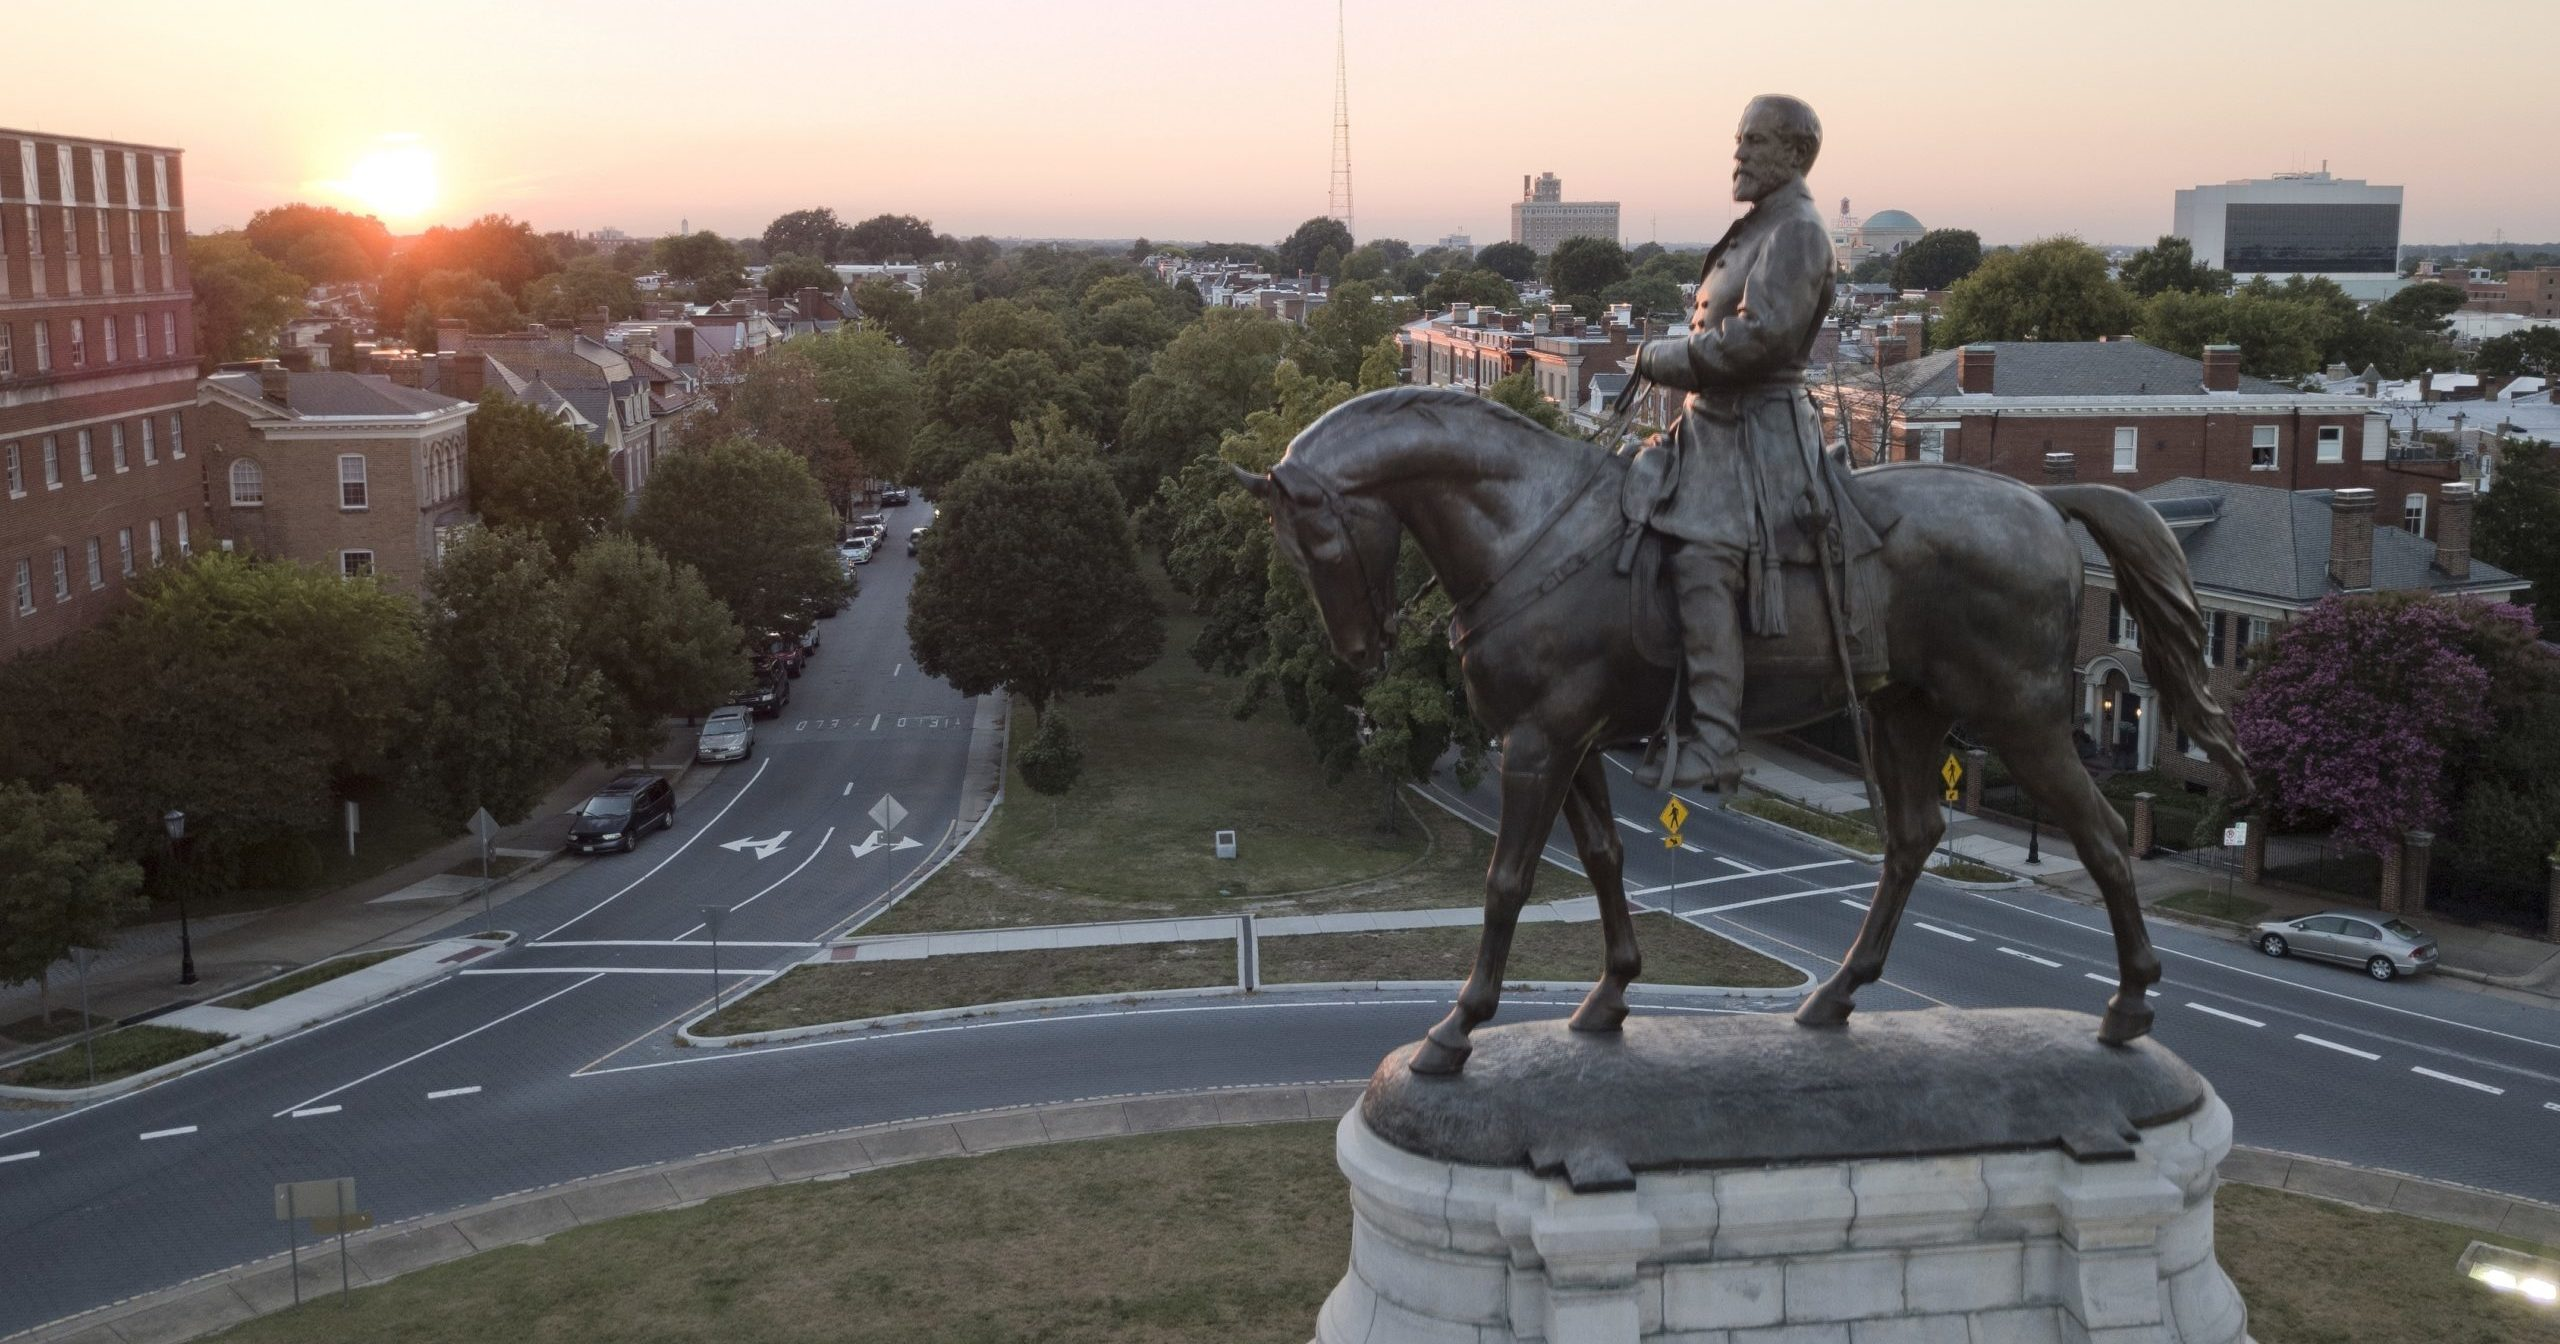 The sun sets behind the statue of confederate General Robert E. Lee on Monument Avenue in Richmond, Virginia, on July 31, 2017.